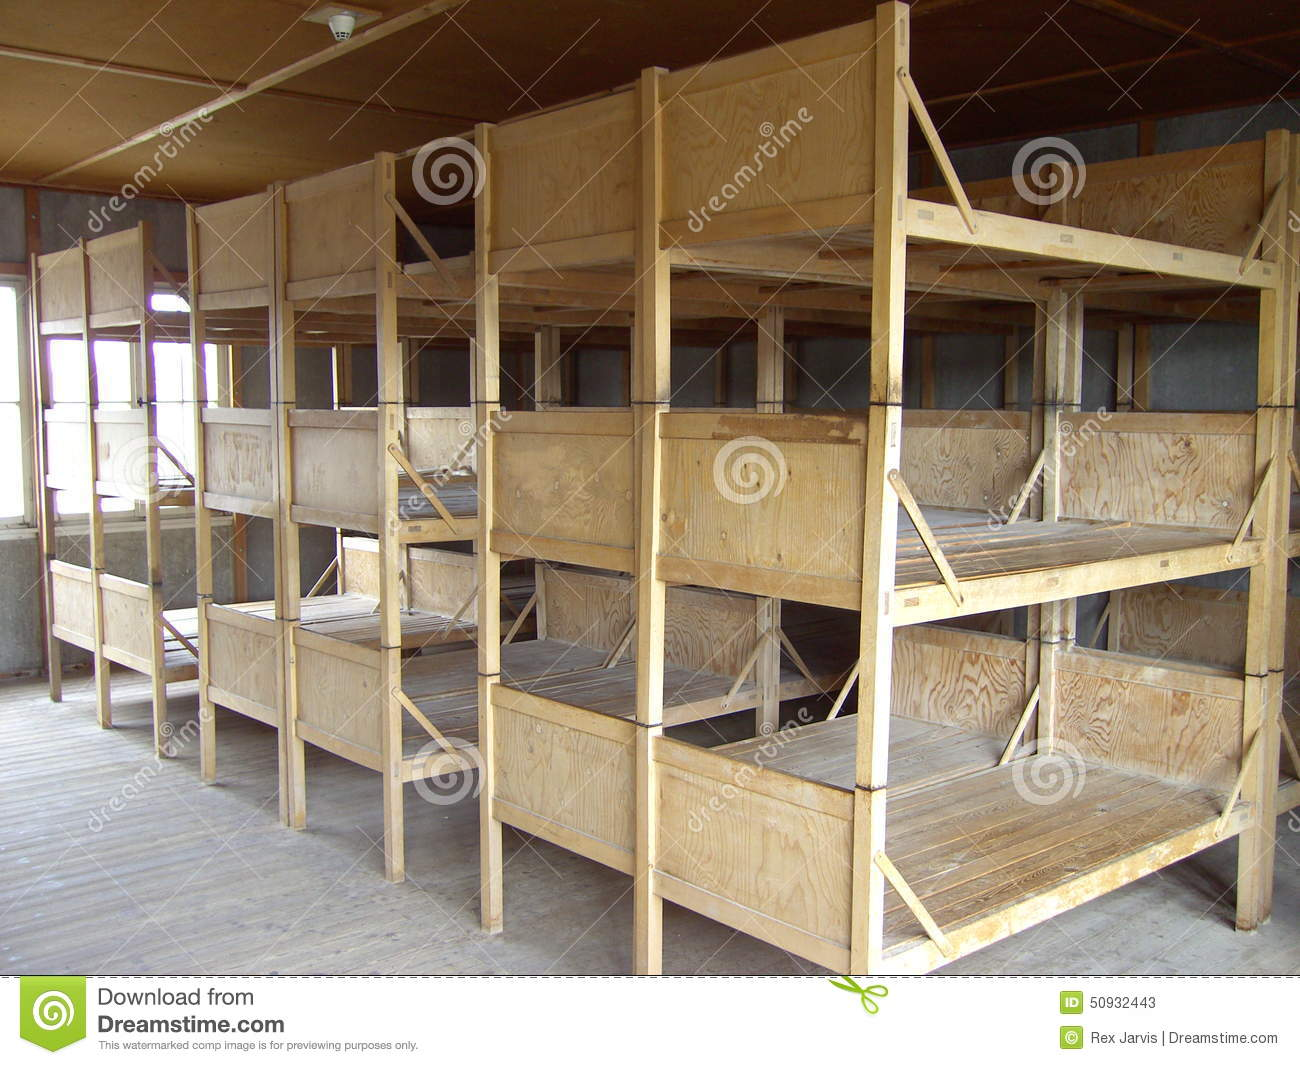 Picture of: Dachau Bunk Beds Stock Image Image Of Bunkbed Germany 50932443